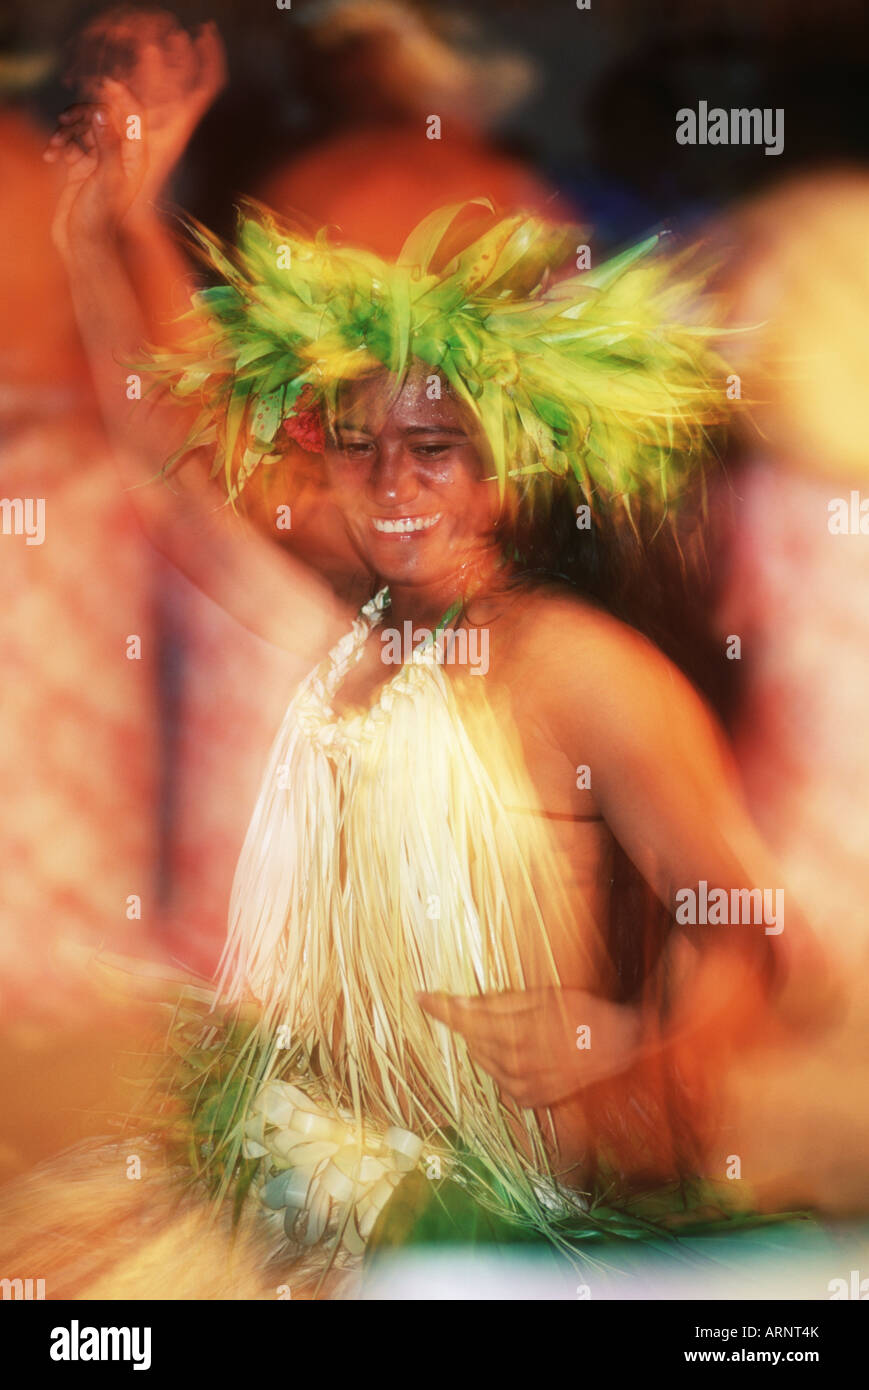 Cook Islands, South Pacific, Raratonga, local dancer in traditional outfit on beach - Stock Image